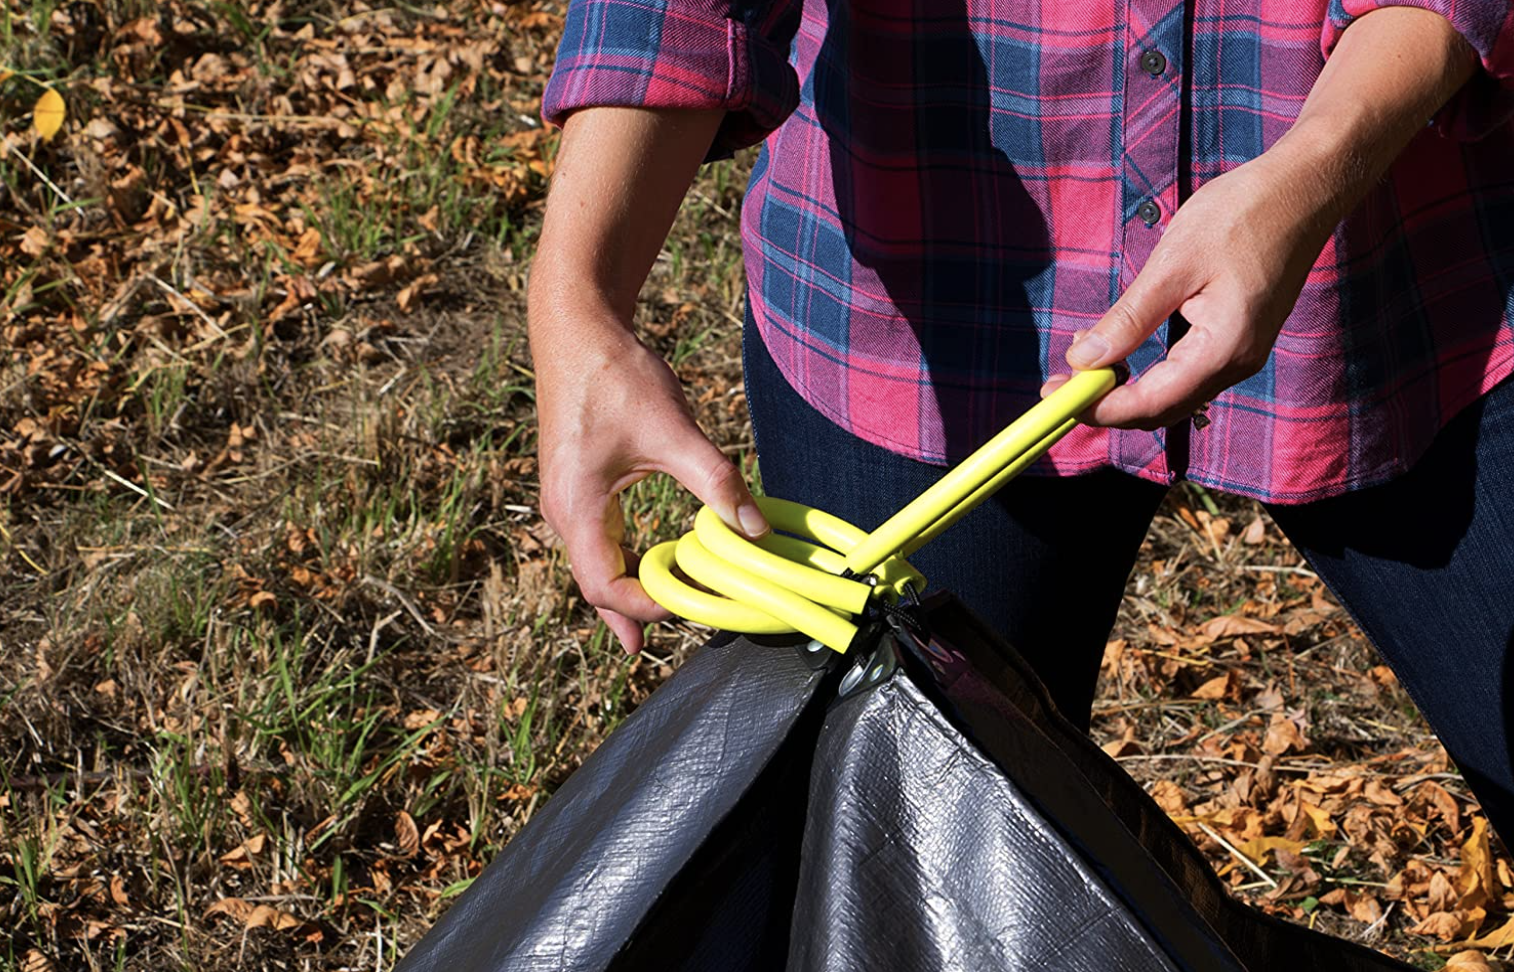 A tarp can make yard work, like raking leaves, go a whole lot smoother. Make cleanup a breeze by adding these tarp handles to help when transporting debris. They even lock together.Find ithere.